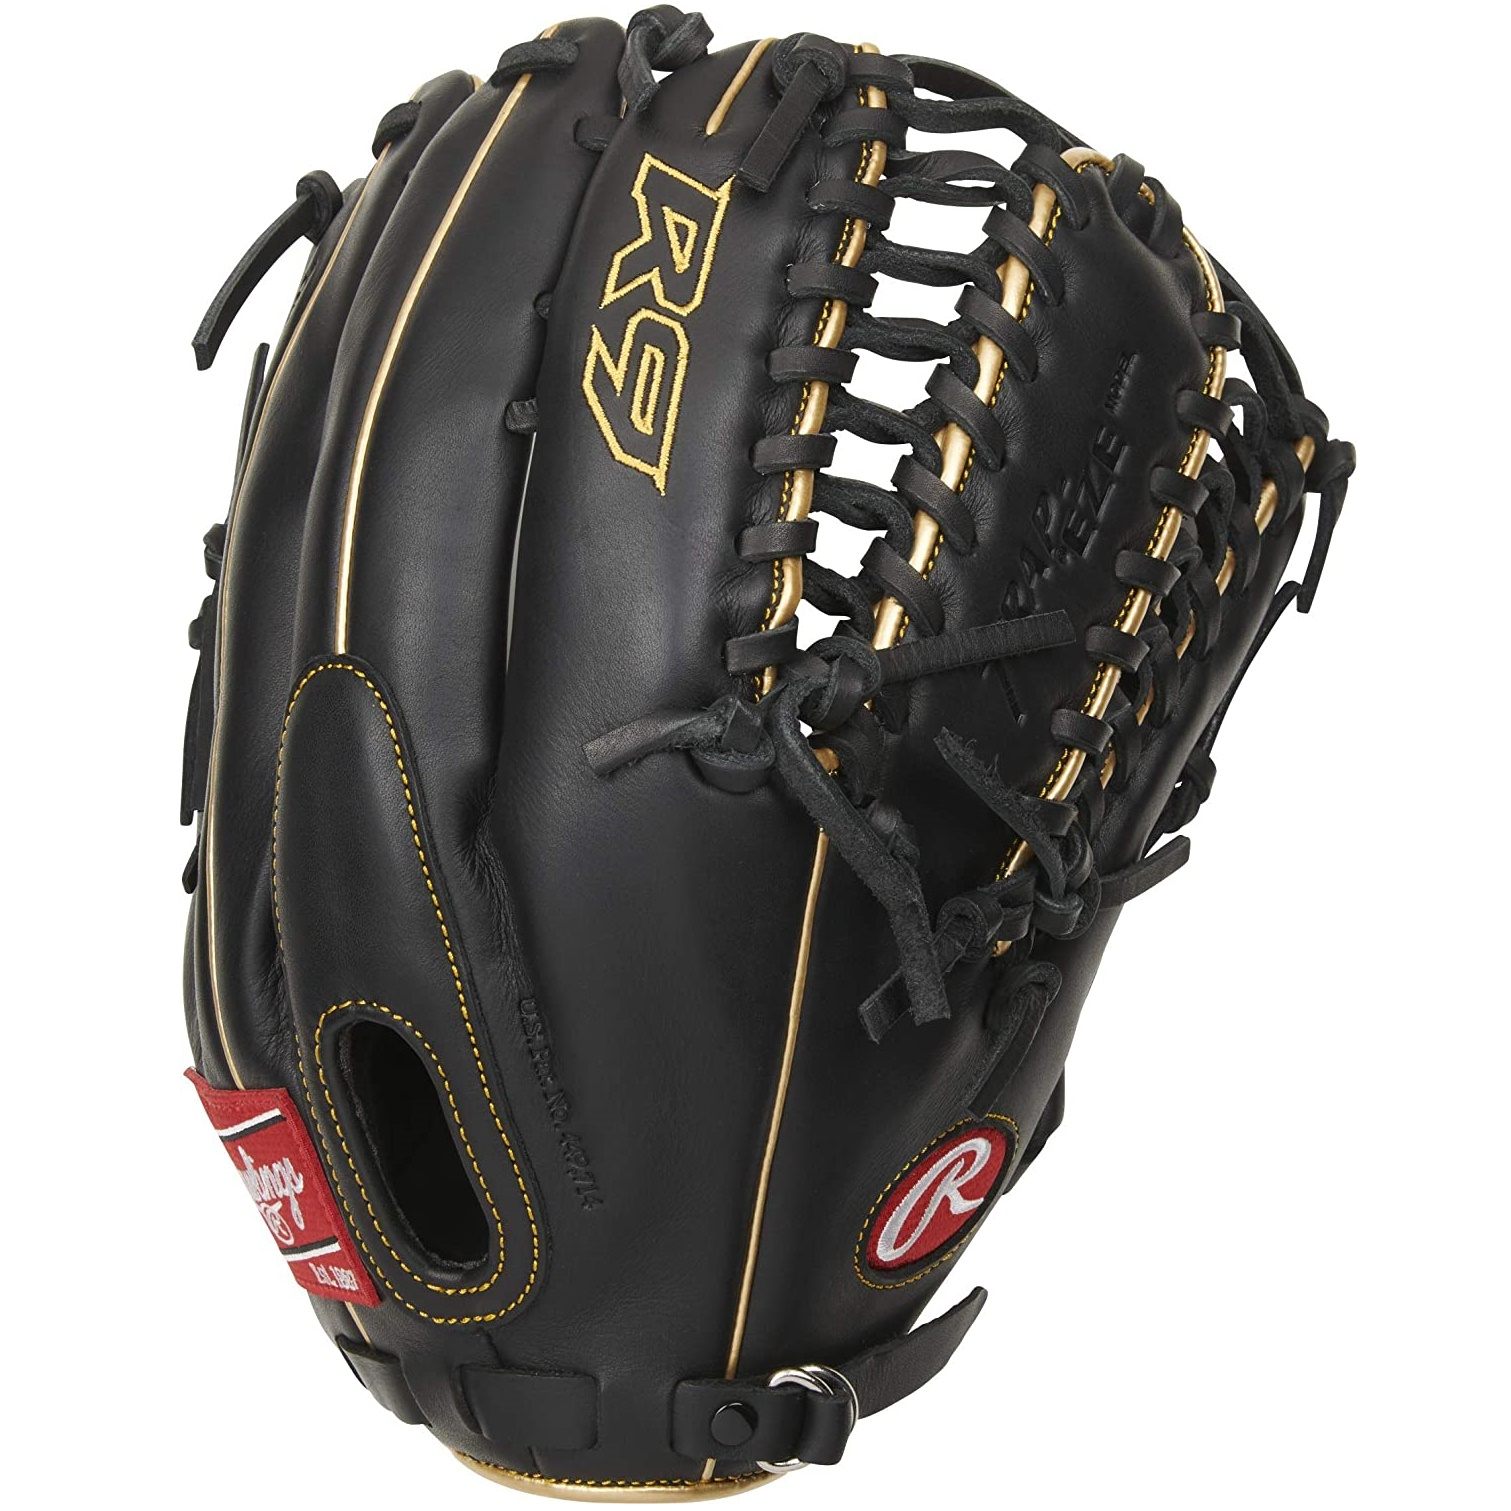 rawlings-r9-baseball-glove-12-75-inch-right-hand-throw R96019BGFS-RightHandThrow Rawlings  The 2021 R9 Series 12.75-Inch outfield glove was carefully constructed with